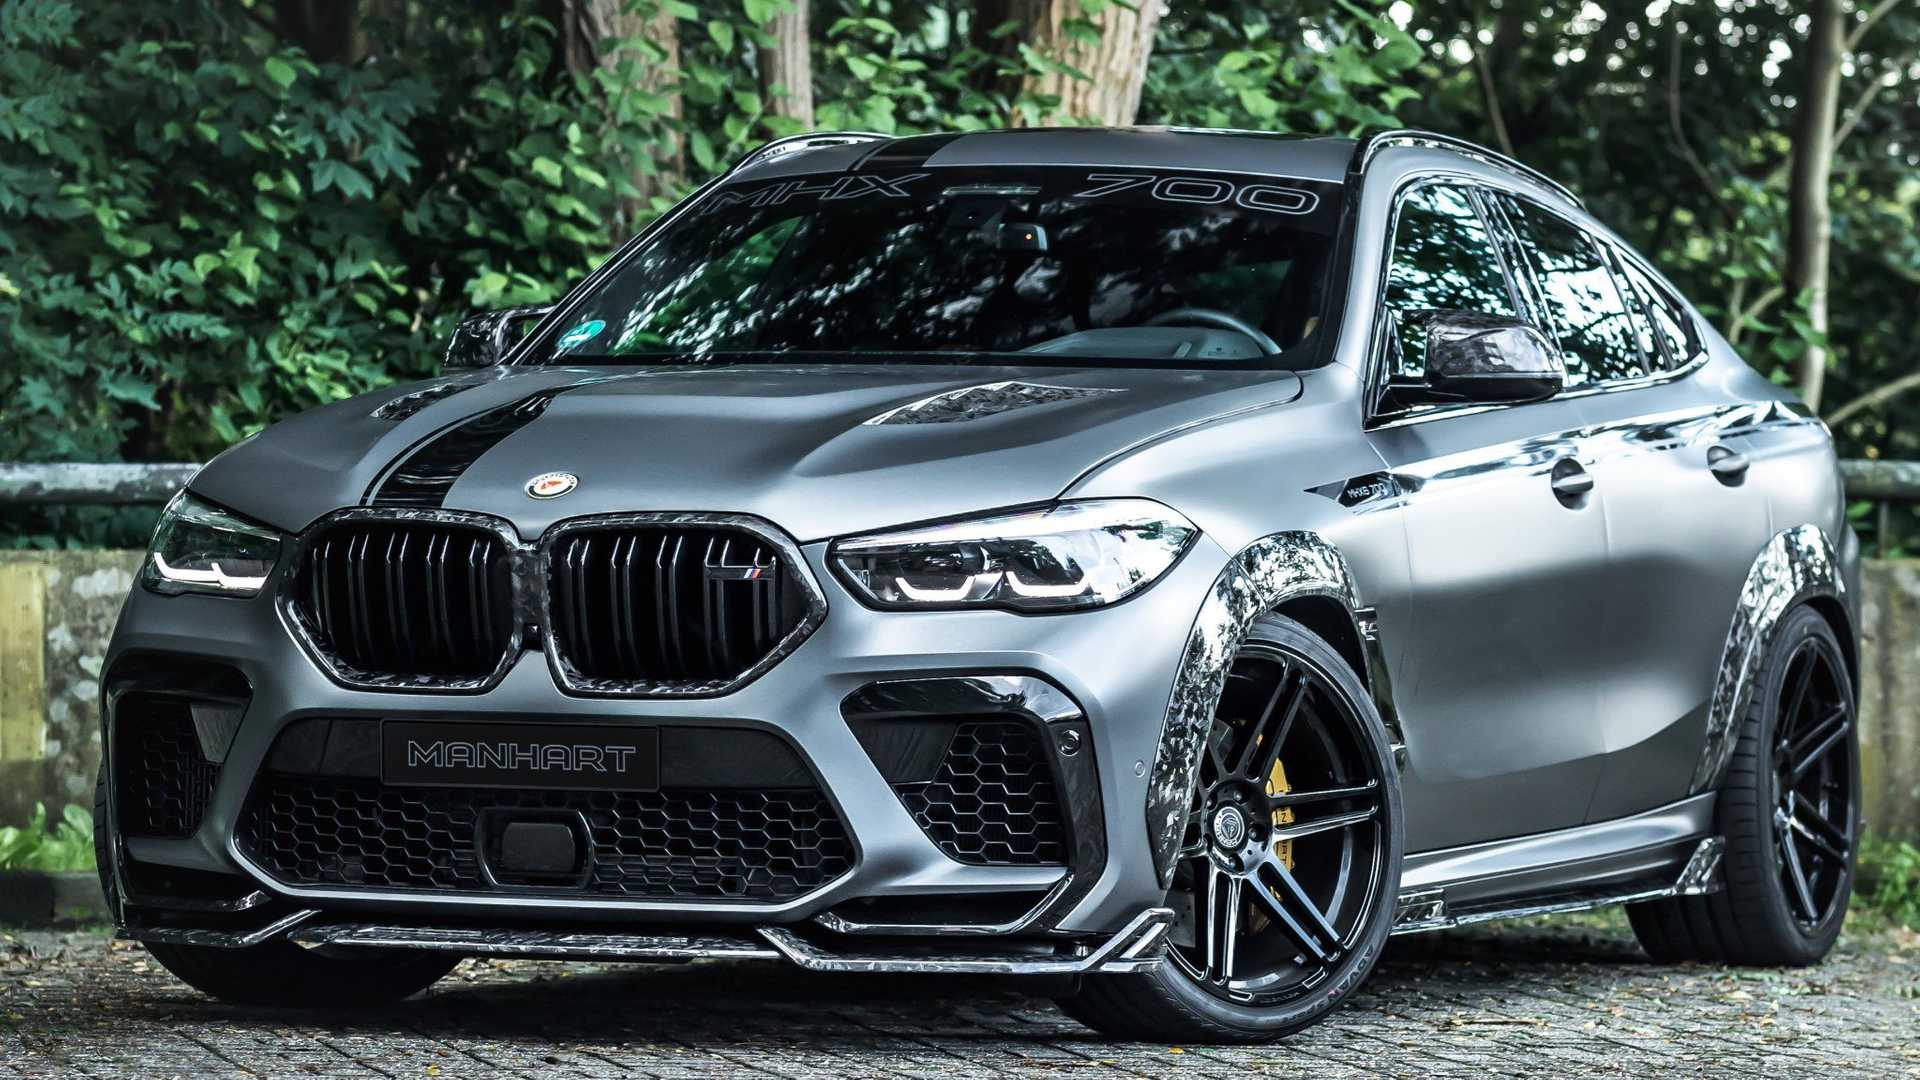 bmw-x6-m-competition-by-manhart-is-a-carbon-masterpiece-3.jpg